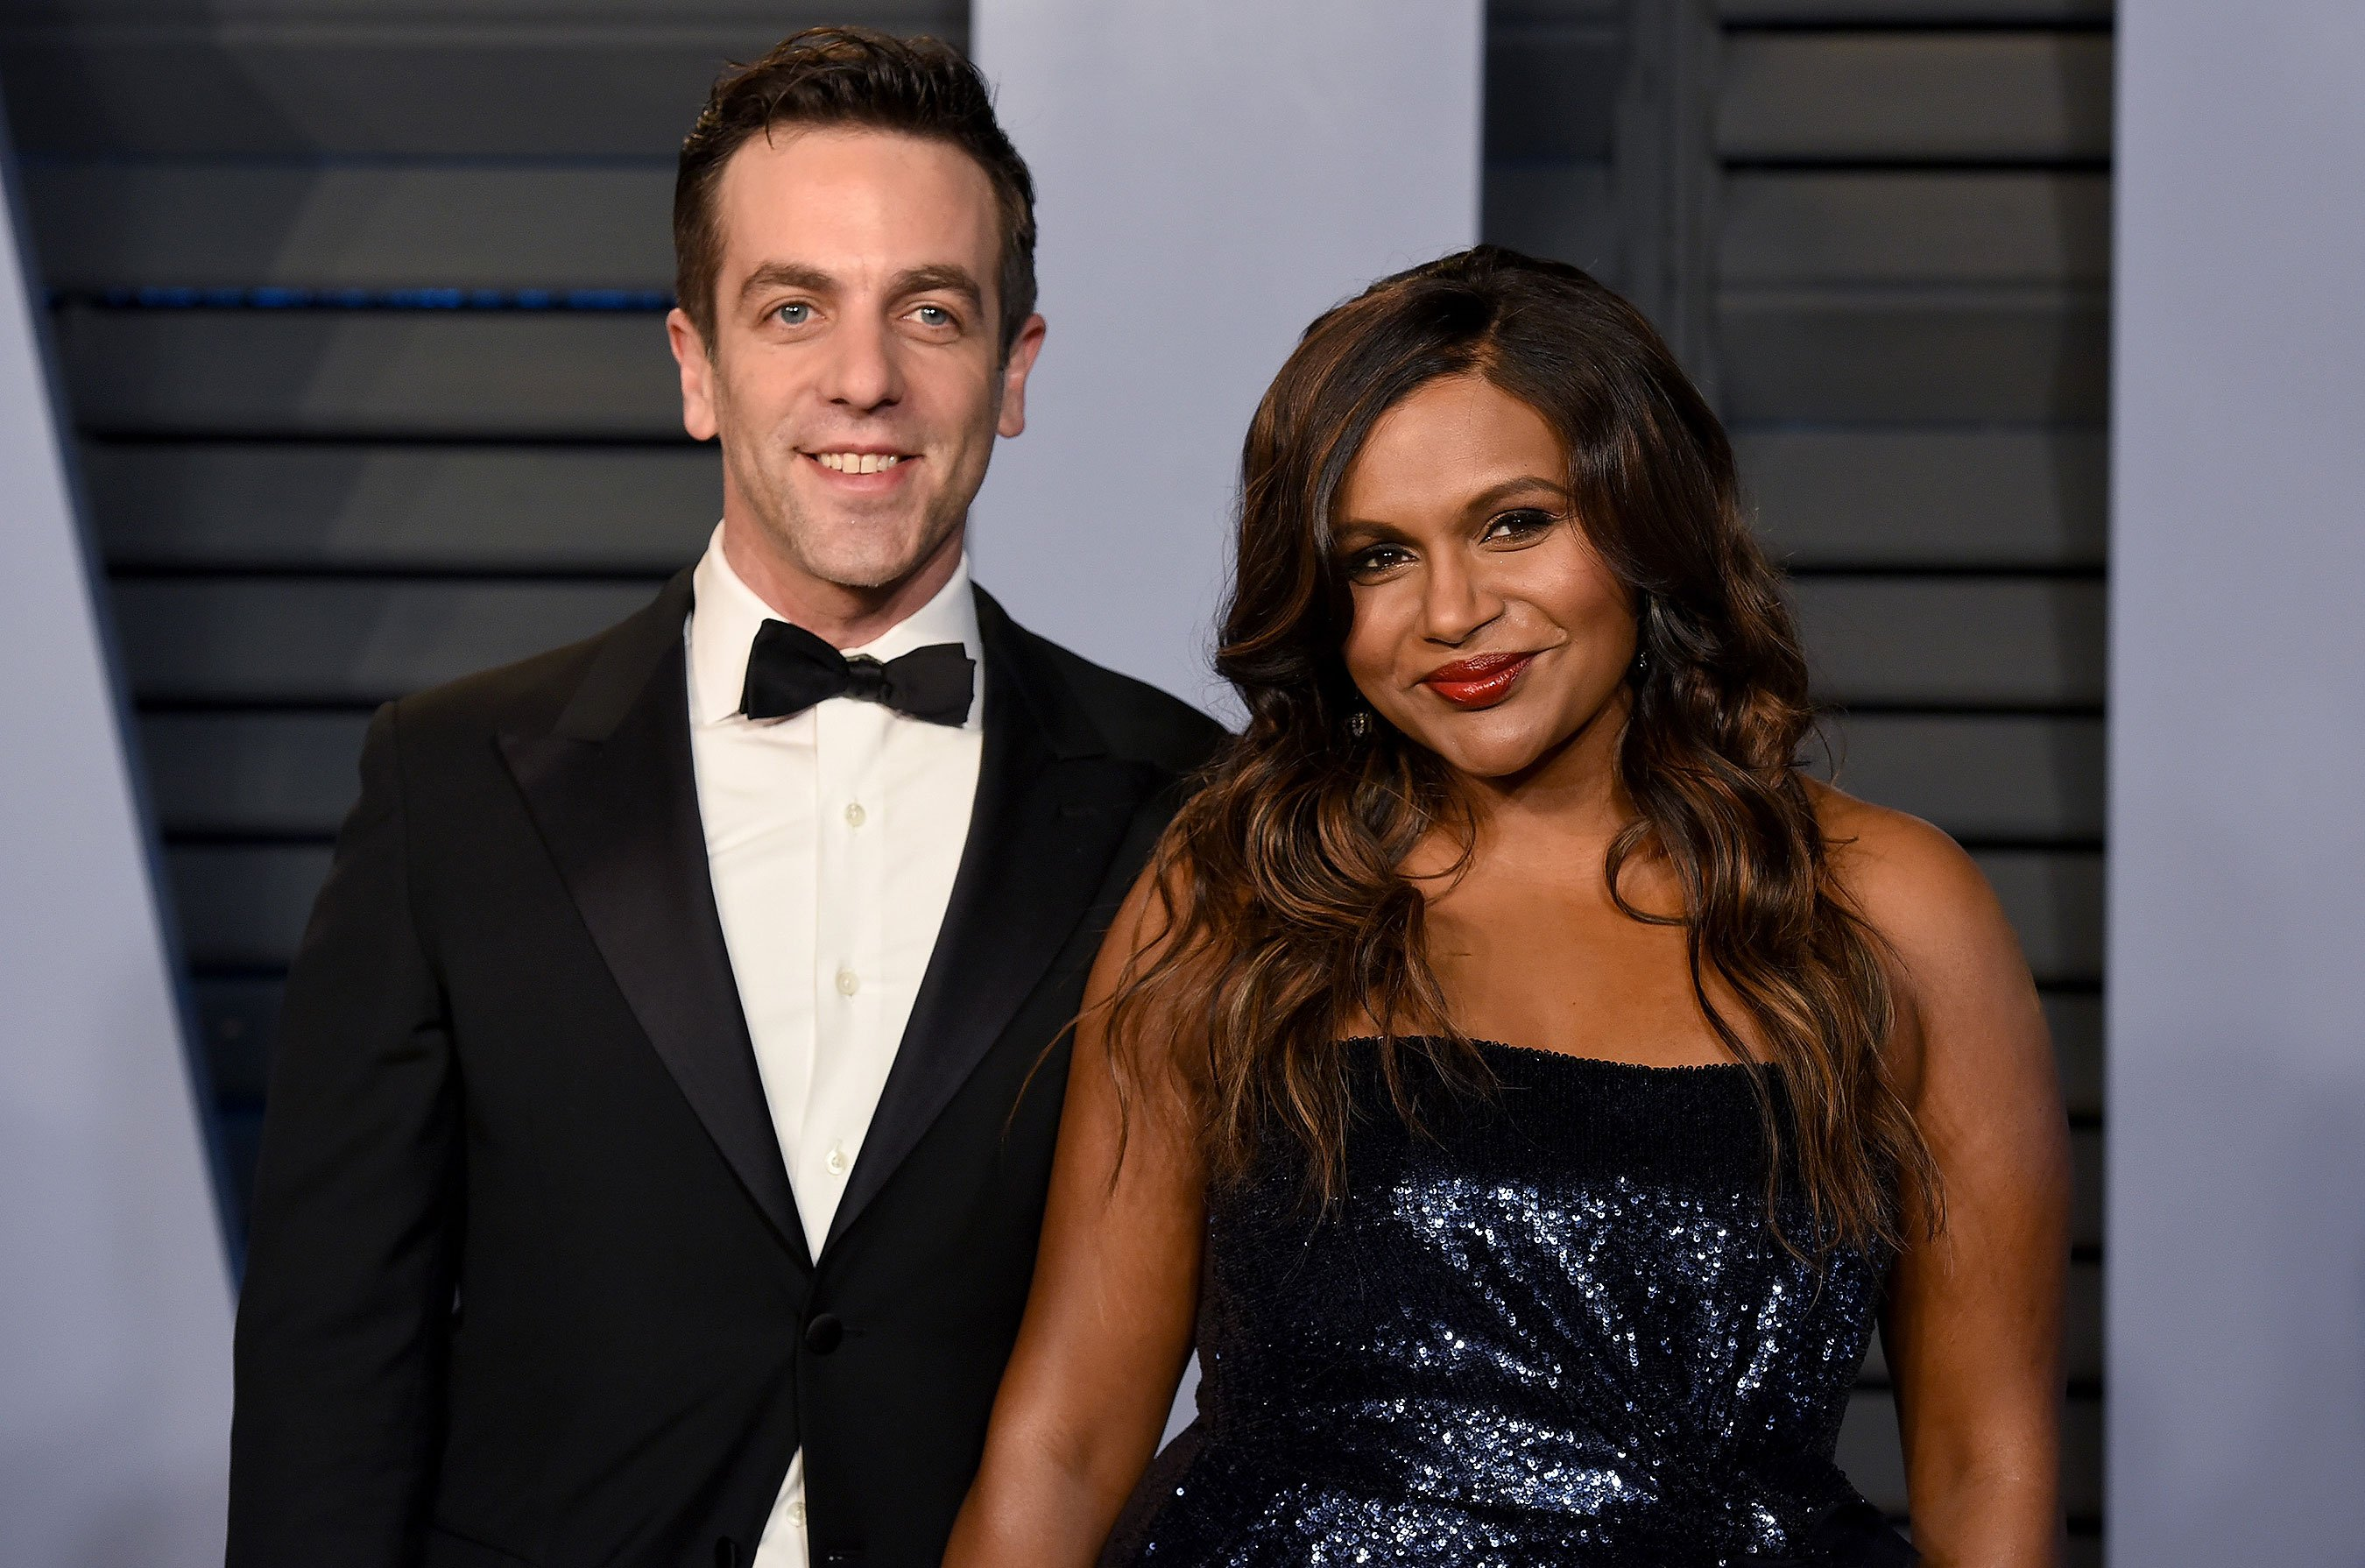 A Wrinkle in Time: B.J. Novak's tweet brings Mindy Kaling to tears